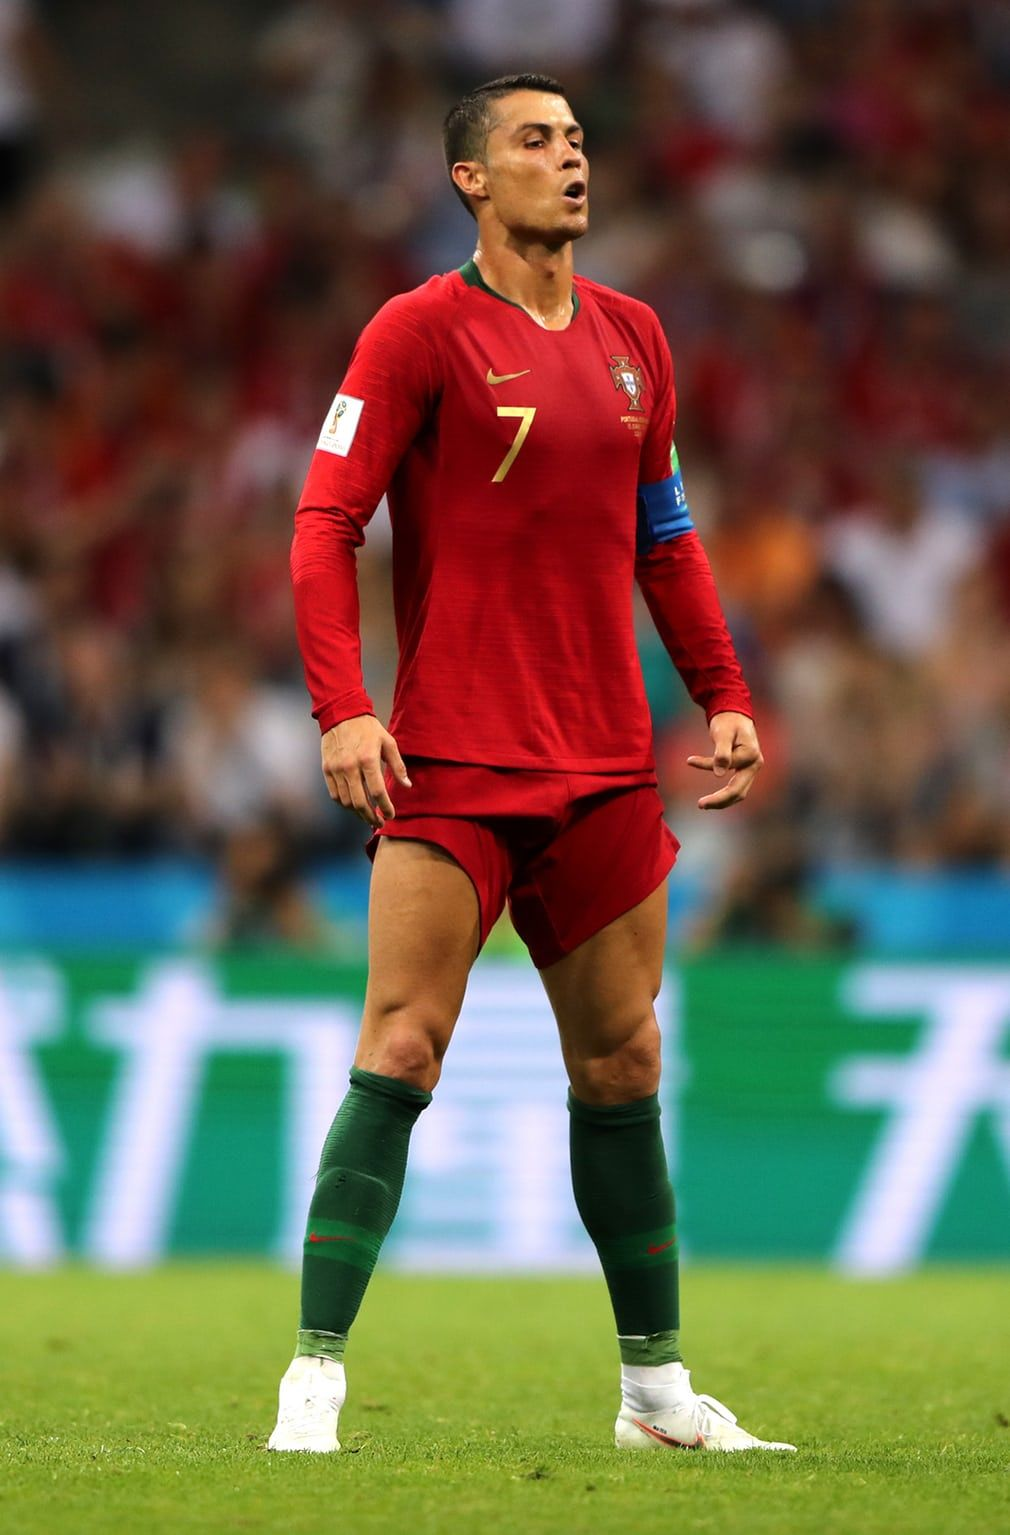 World Cup 2018 Cristiano Ronaldo Saves Portugal In Classic Clash With Spain In Pictures Cristiano Ronaldo Ronaldo Cristiano Ronaldo Portugal